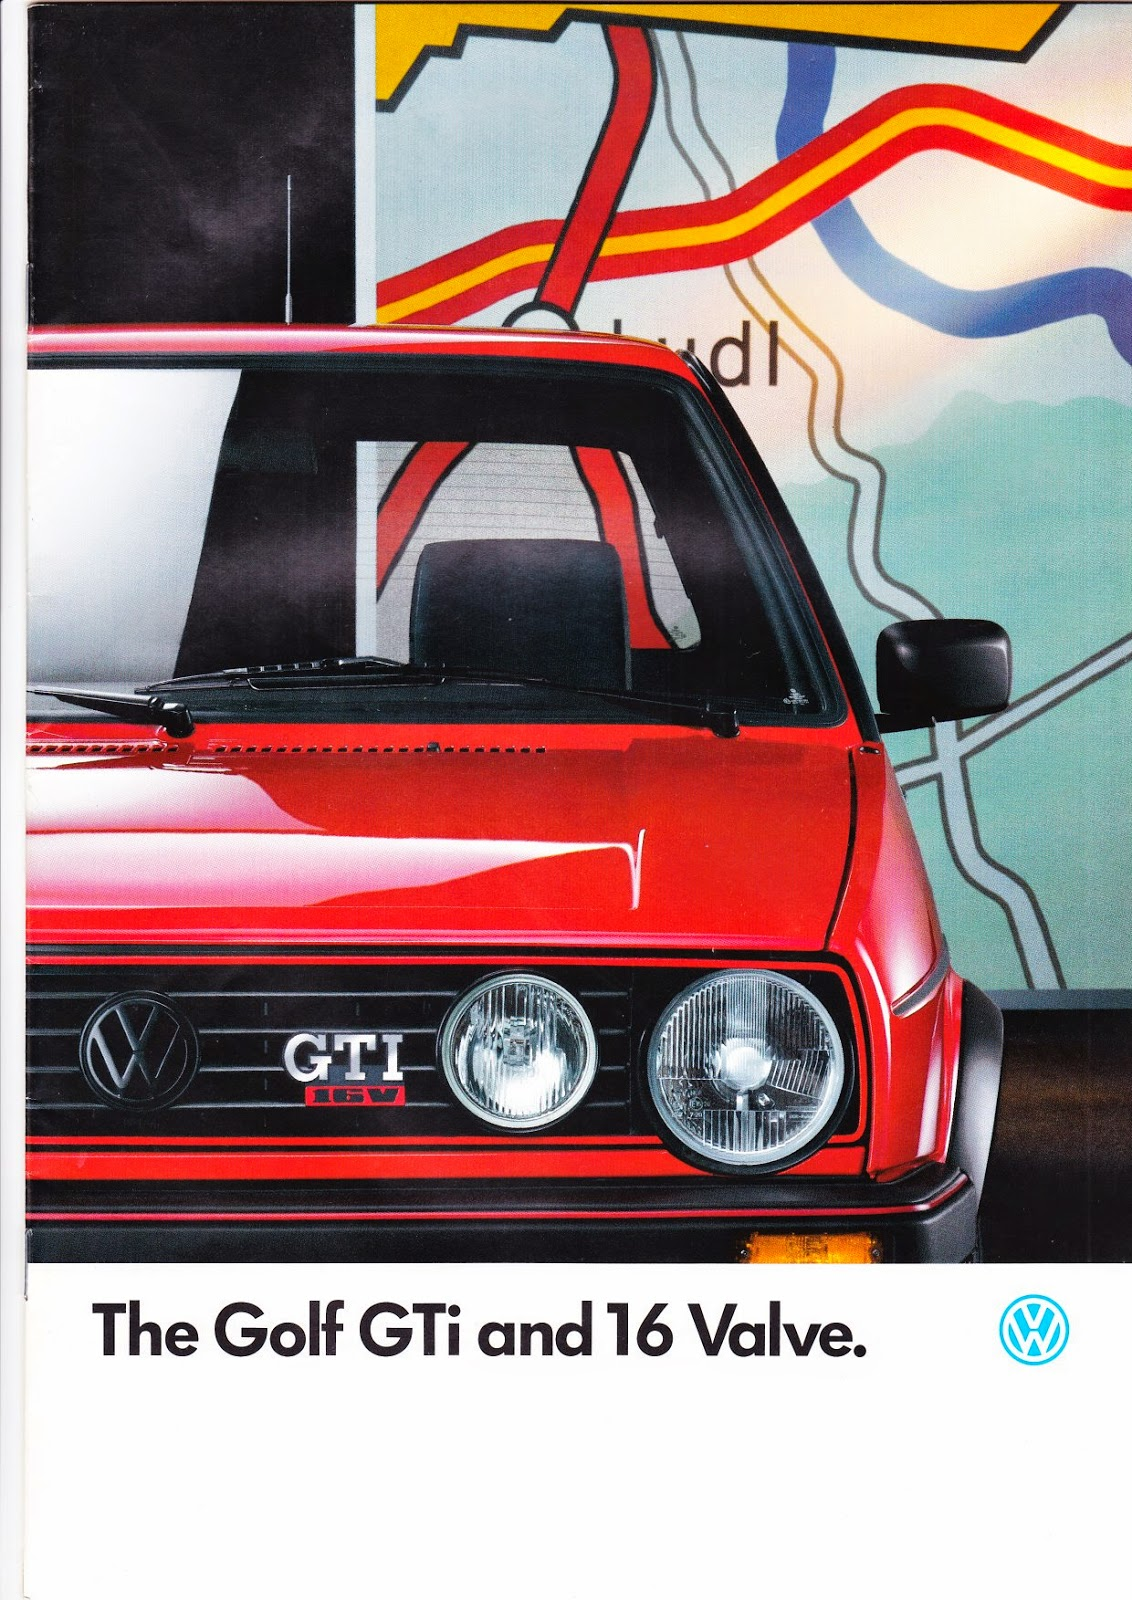 VW Golf MK2 GTI 1.8 16V Original Sales Brochure